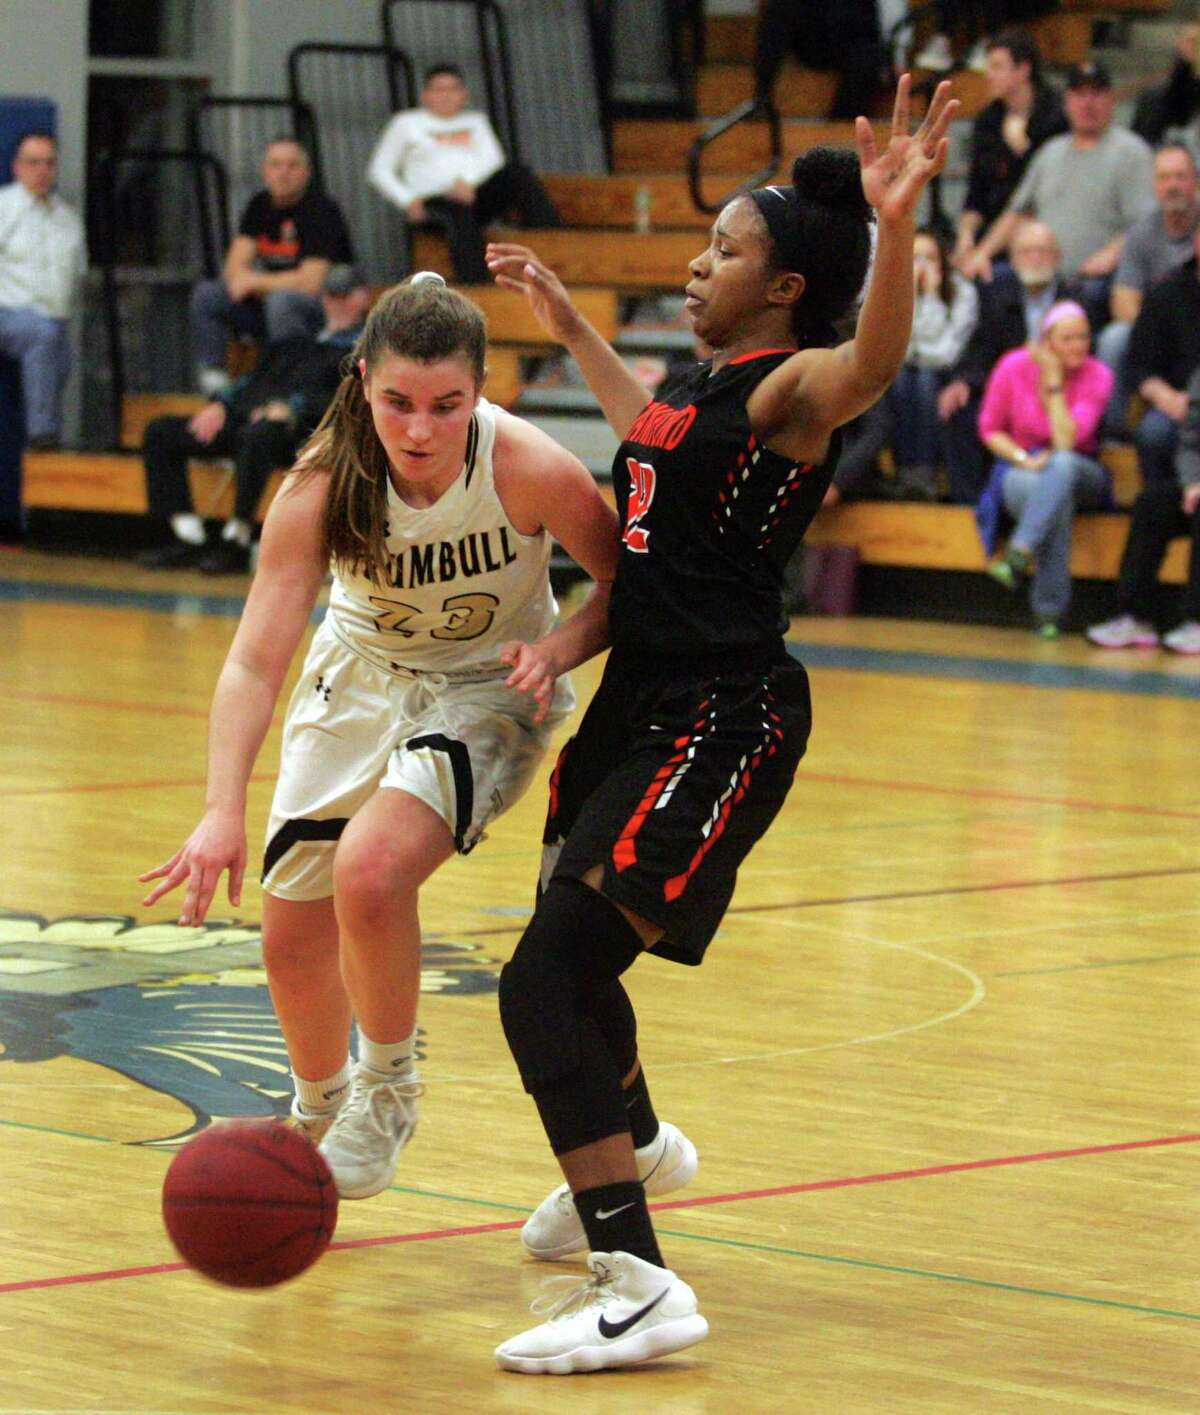 Trumbull's Julie Keckler will play for the Girls West team in the JCC Classic on Sunday at the Shehan Center.